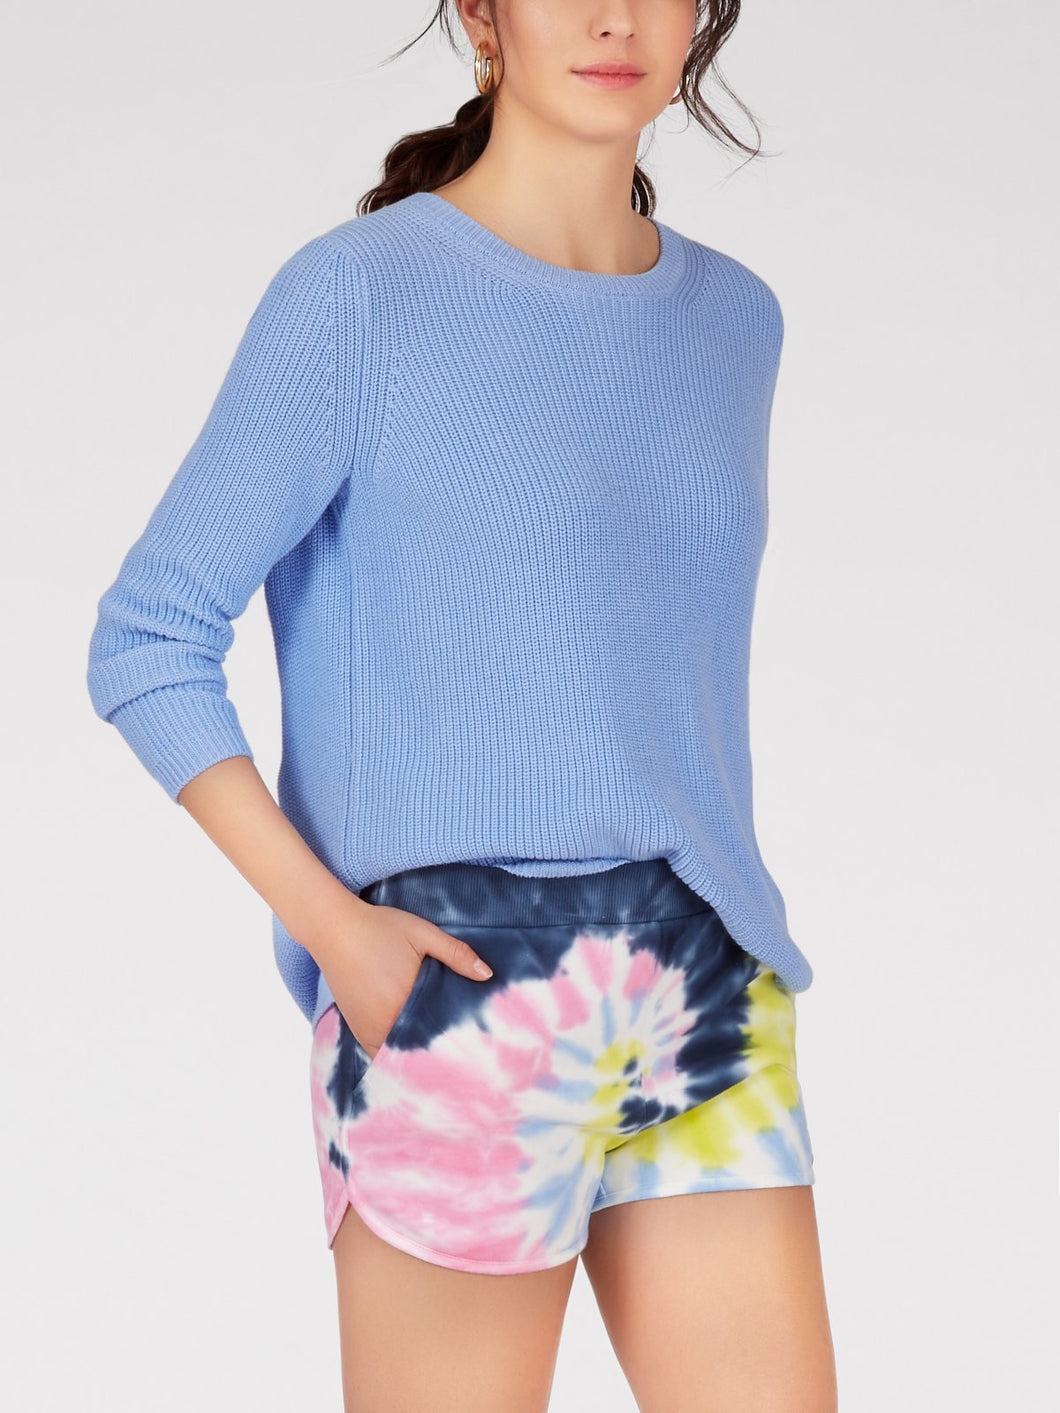 Emma Cotton Shaker Sweater in Periwinkle by 525 America